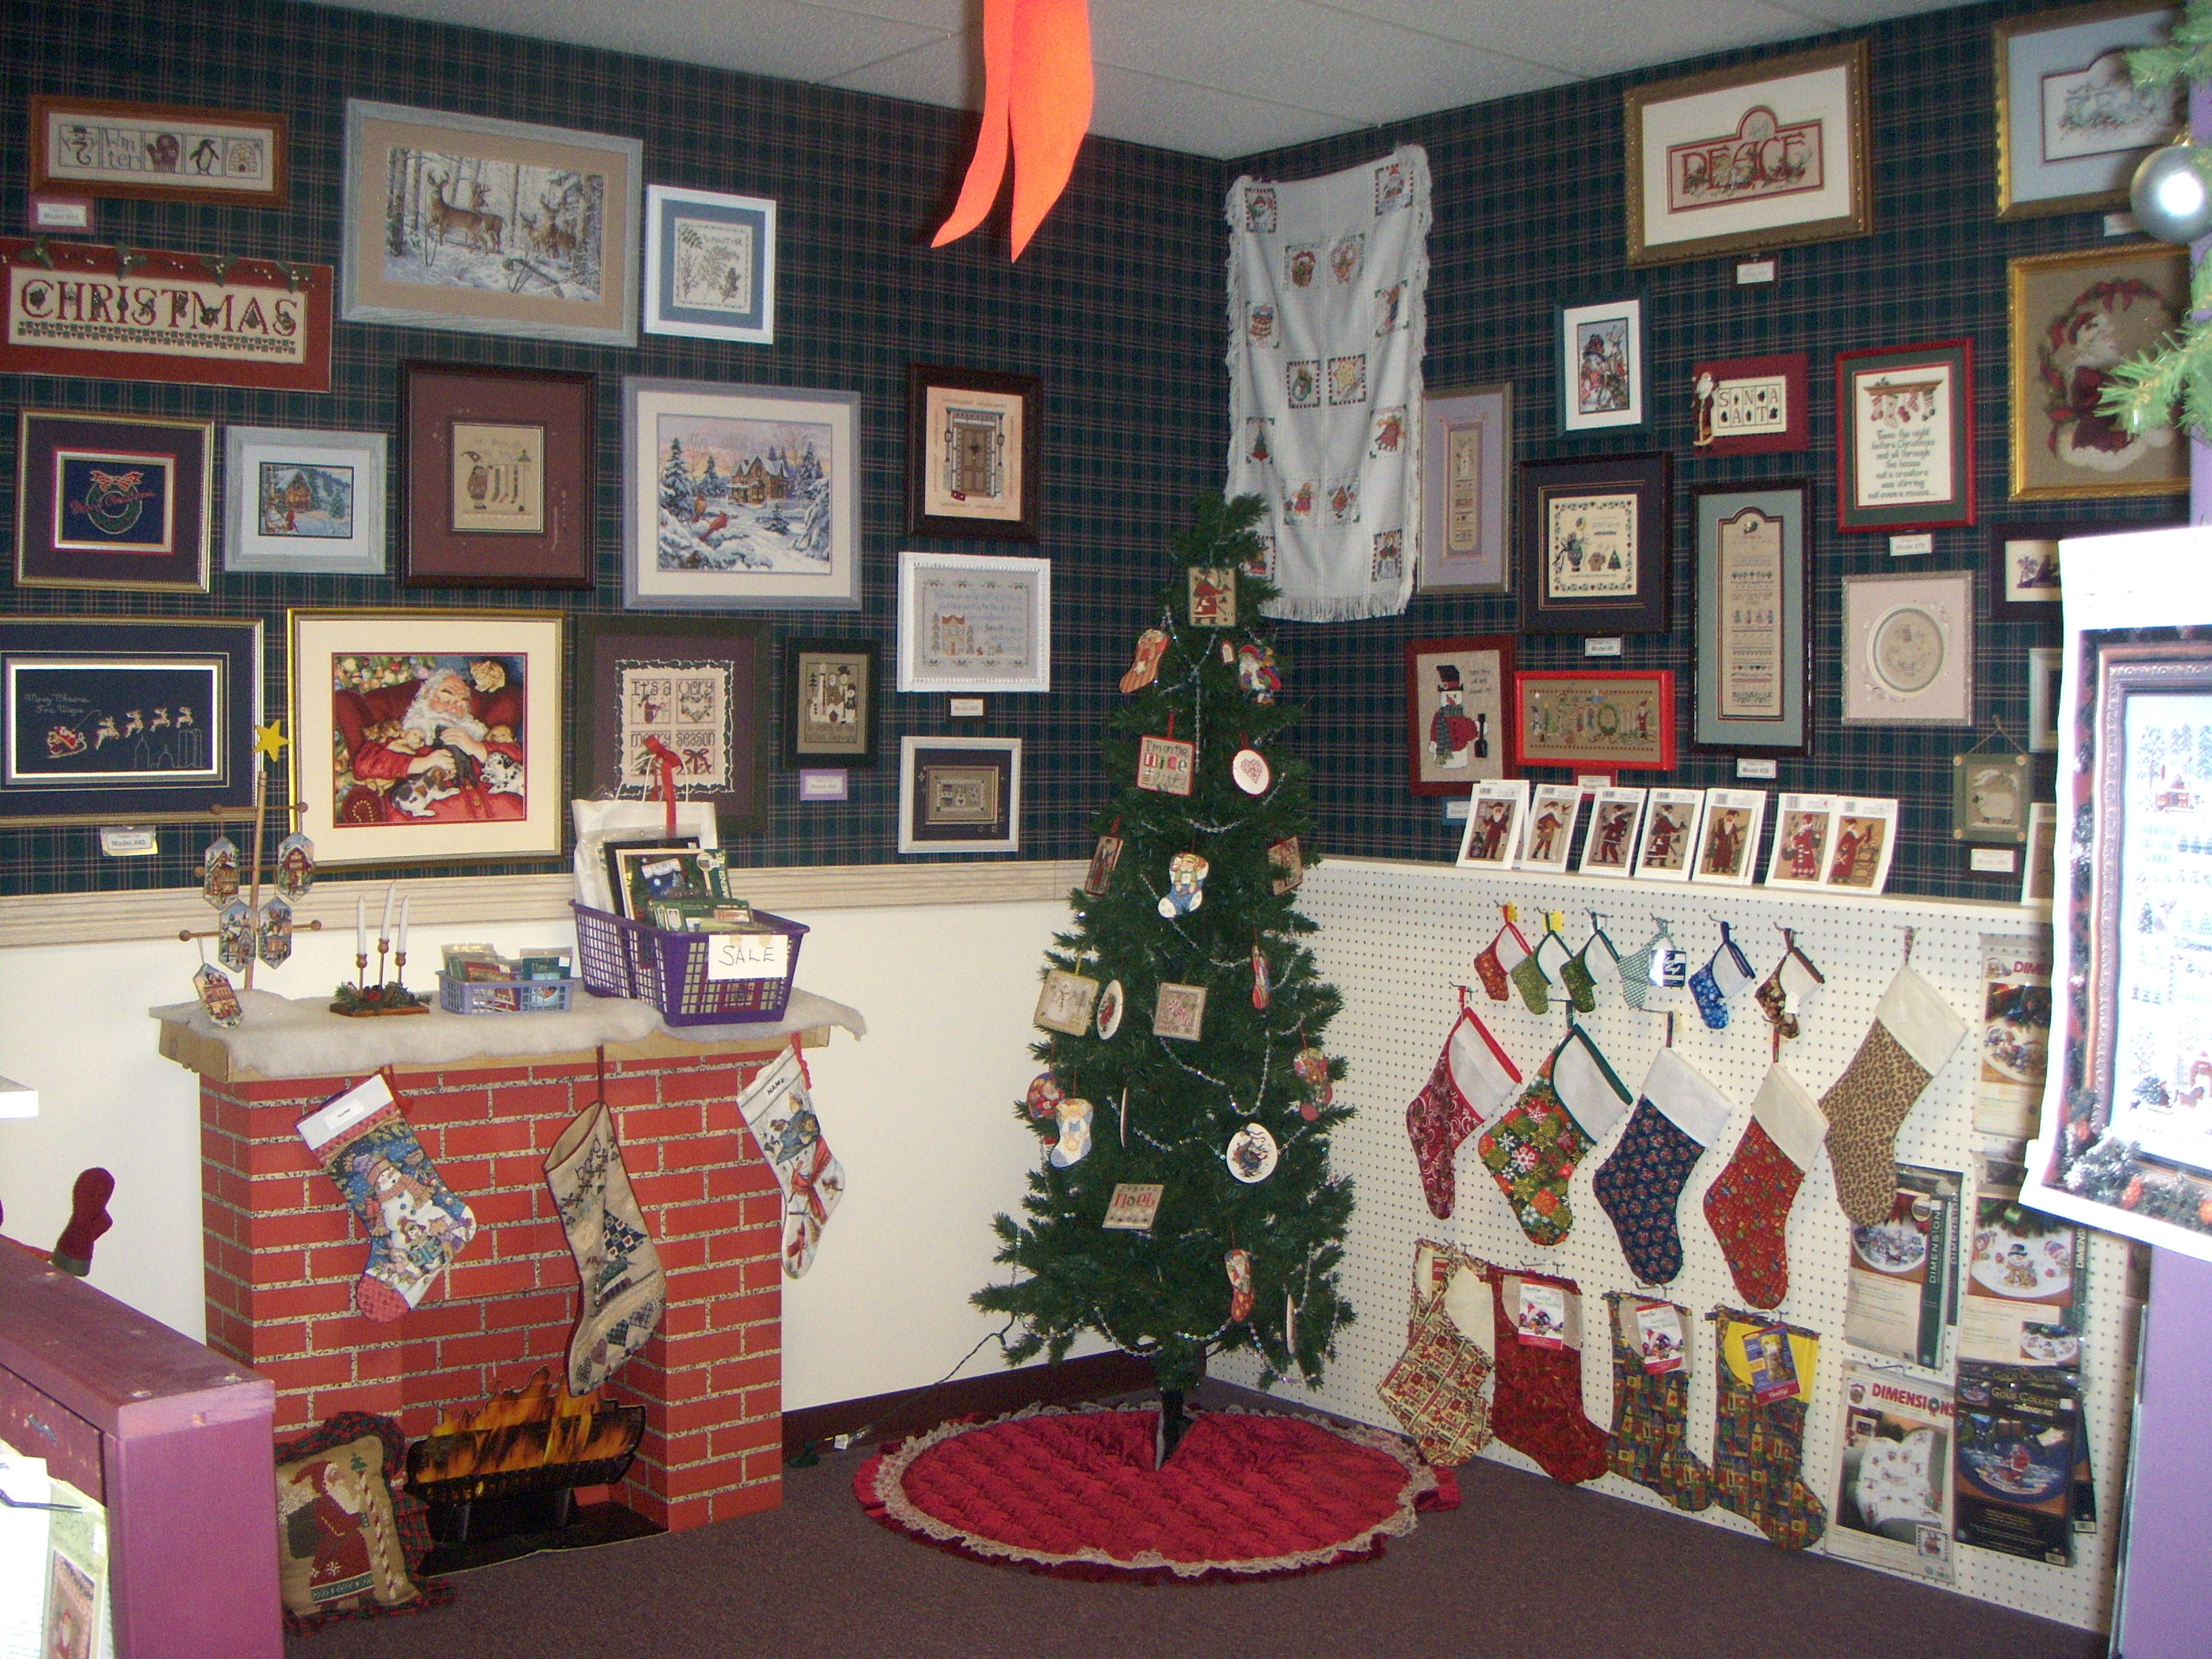 212e1a9fec6 We celebrate Christmas all year round in our Christmas room. It's full of  Christmas Kits of Stockings, Ornaments and Christmas Pictures both large  and small